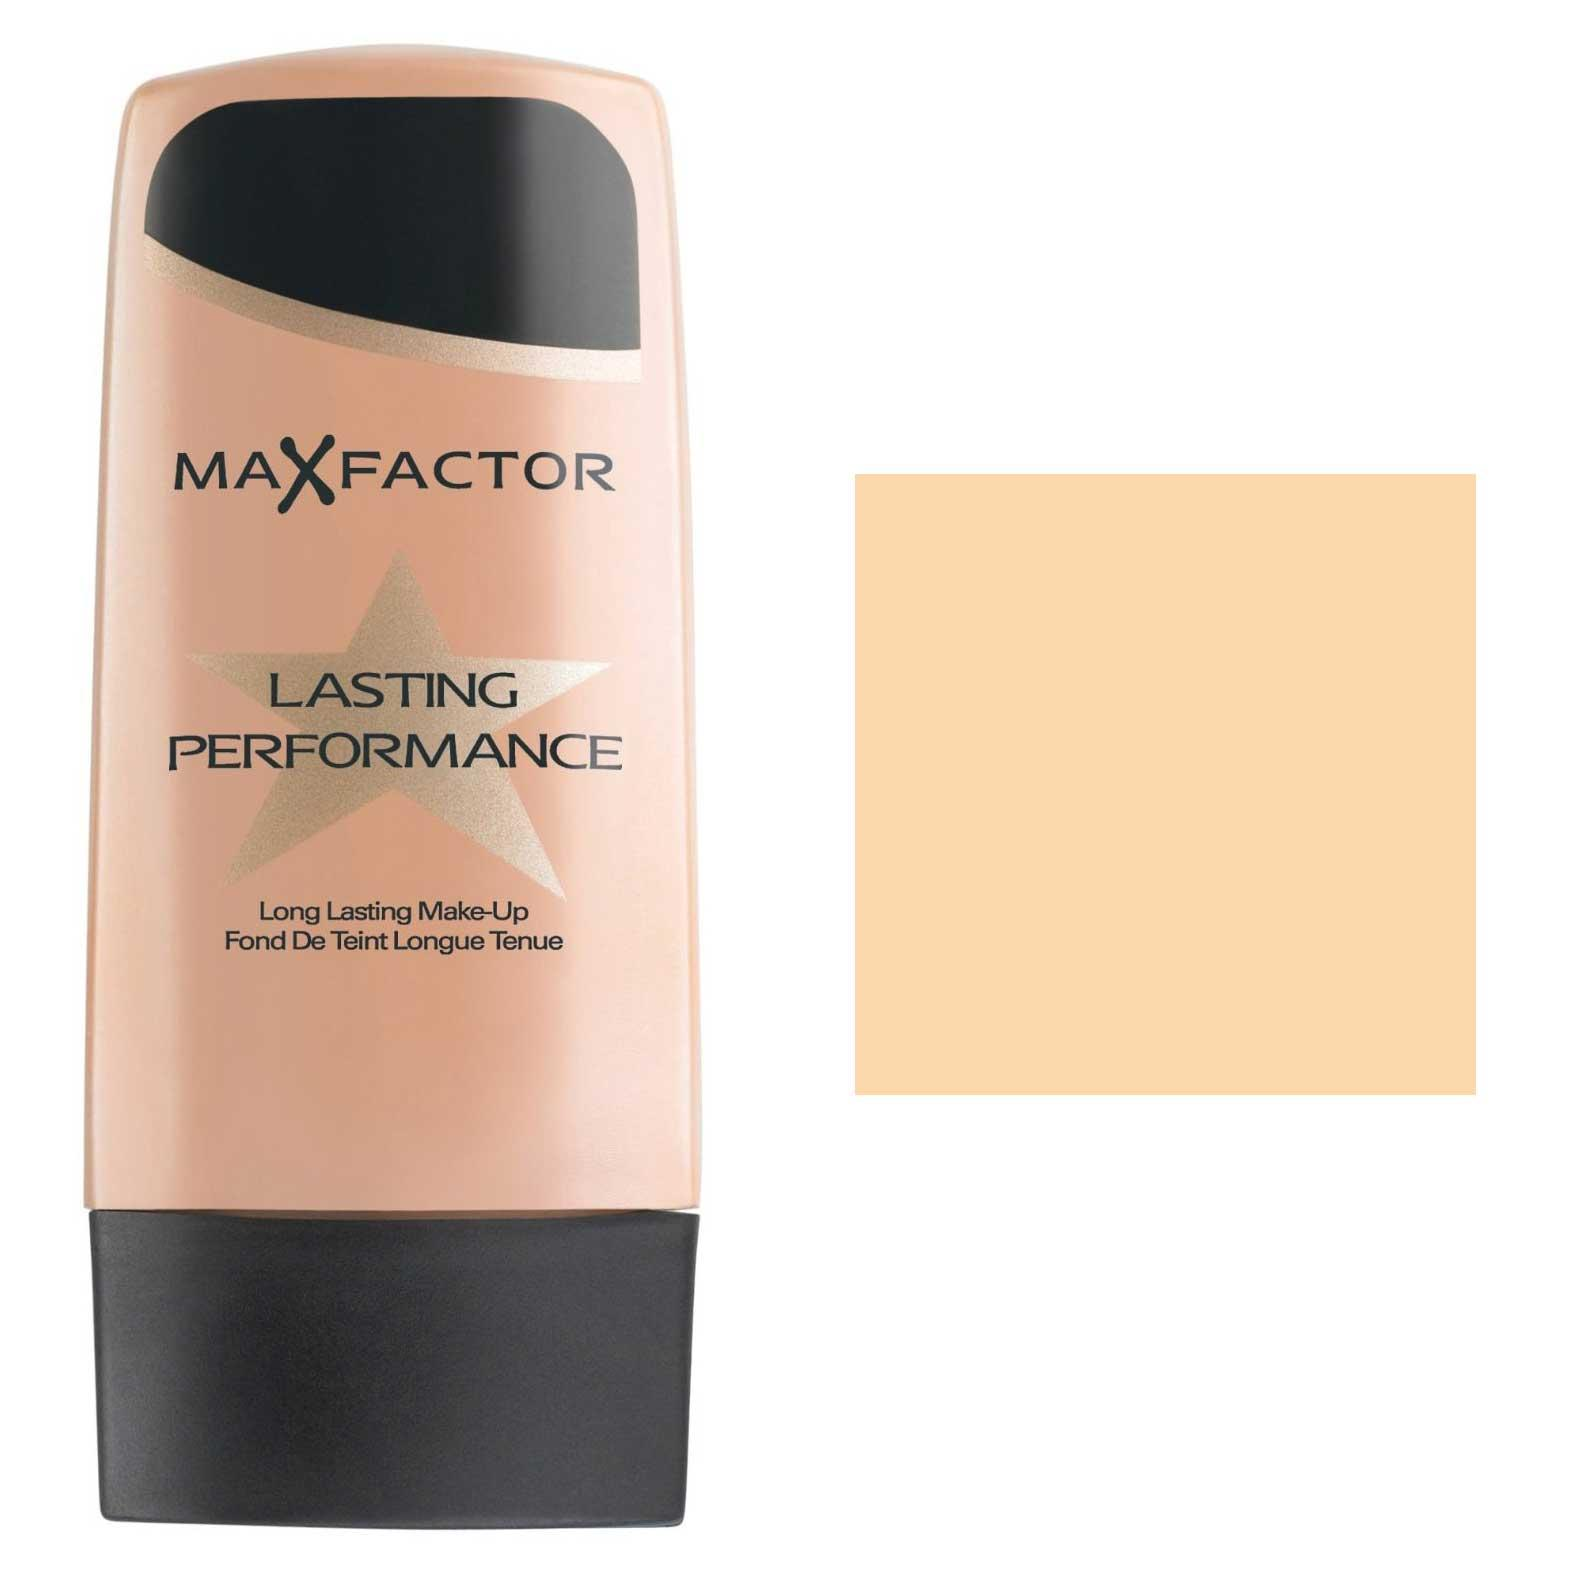 Fond De Ten Lichid Max Factor Lasting Performance - 35 Pearl Beige, 35ml